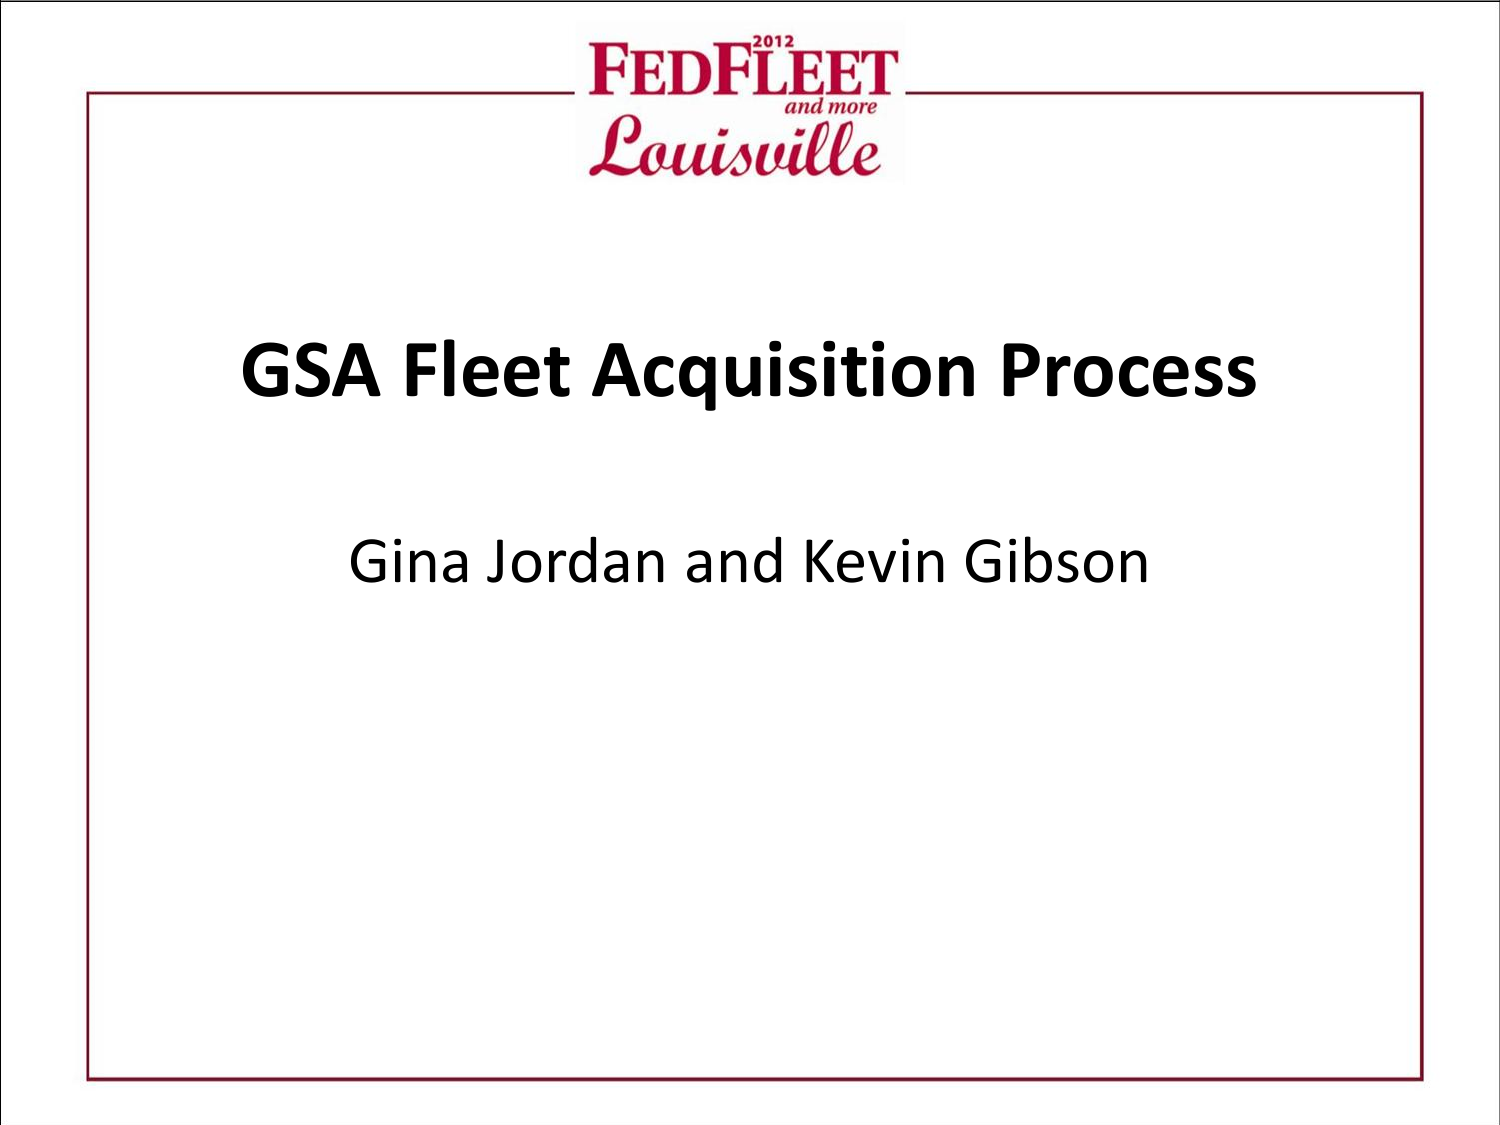 GSA Motor Vehicle Management: GSA Fleet Acquisition Processes